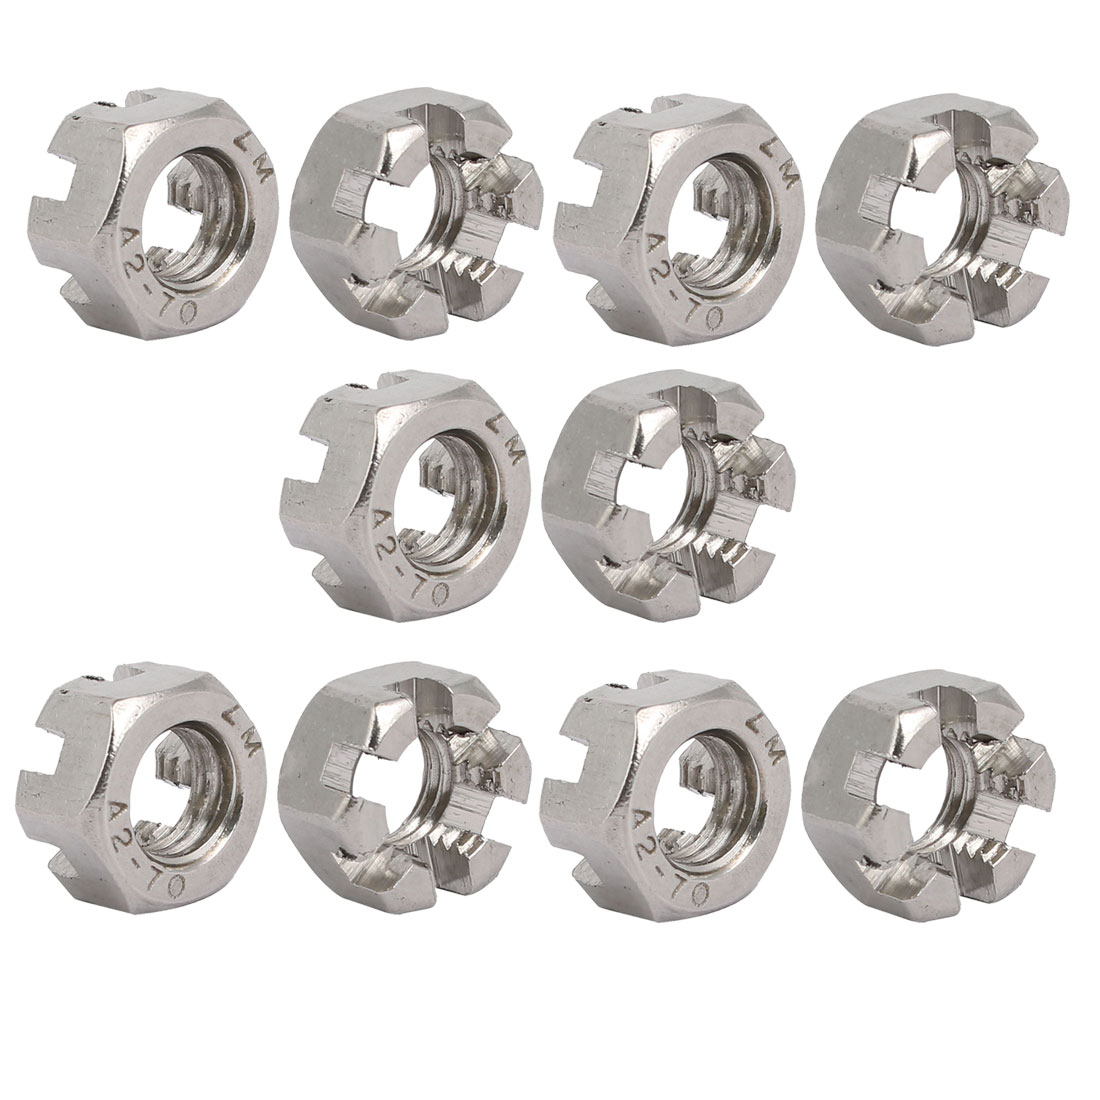 10pcs M10x1.5mm 304 Stainless Steel Hexagon Slotted Castle Nut Silver Tone